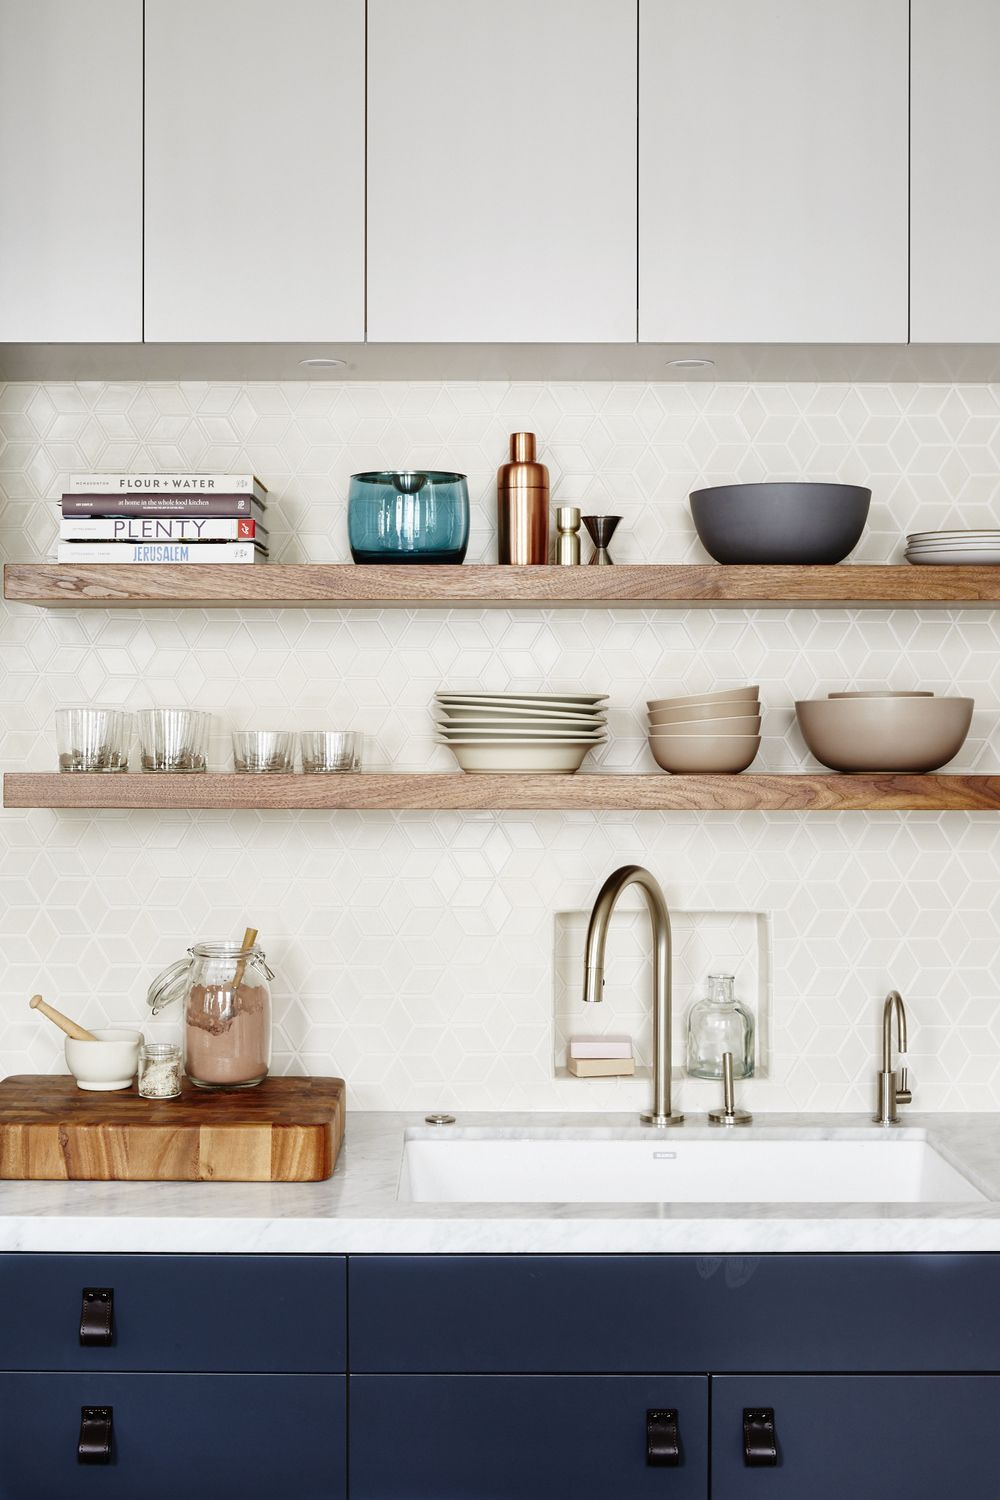 Ikea Offene Küchenregale Kitchen Shelfie Registry Essentials With Crate And Barrel Tank